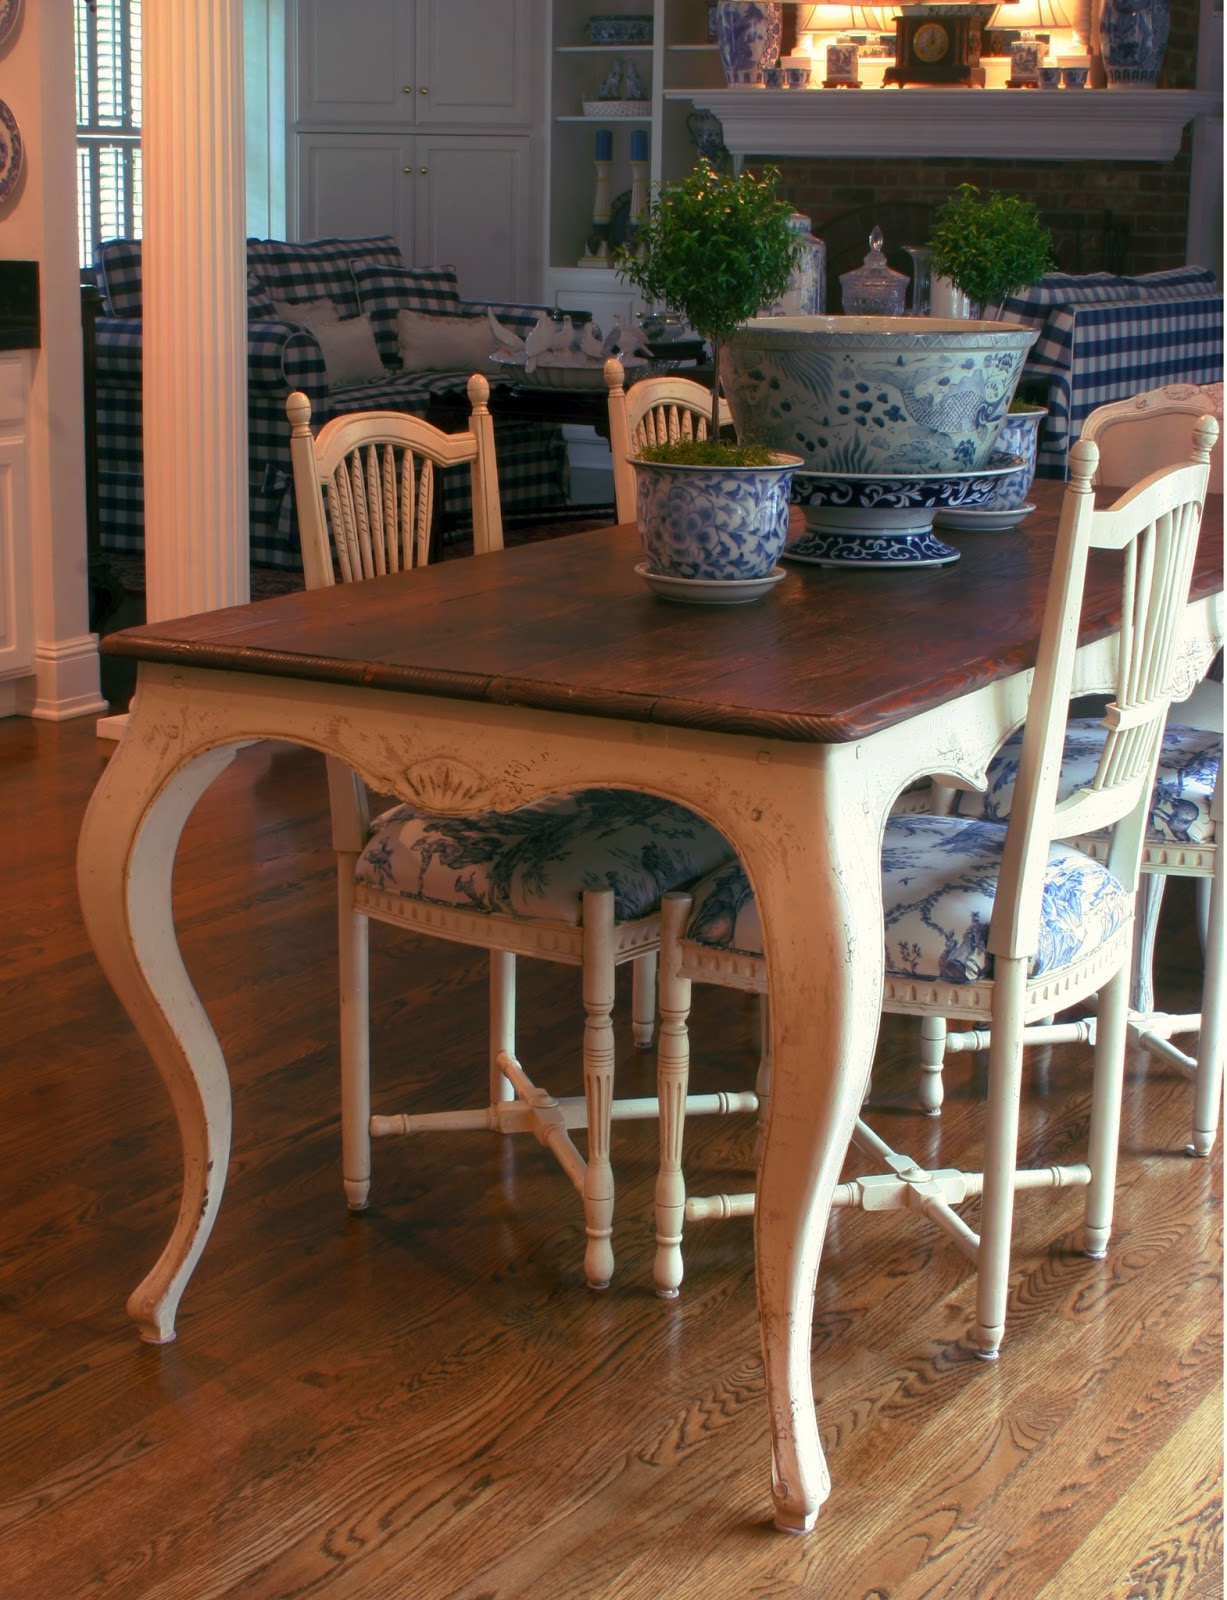 french country dining table with cabriole legs, white painted antique finish and natural walnut colored top